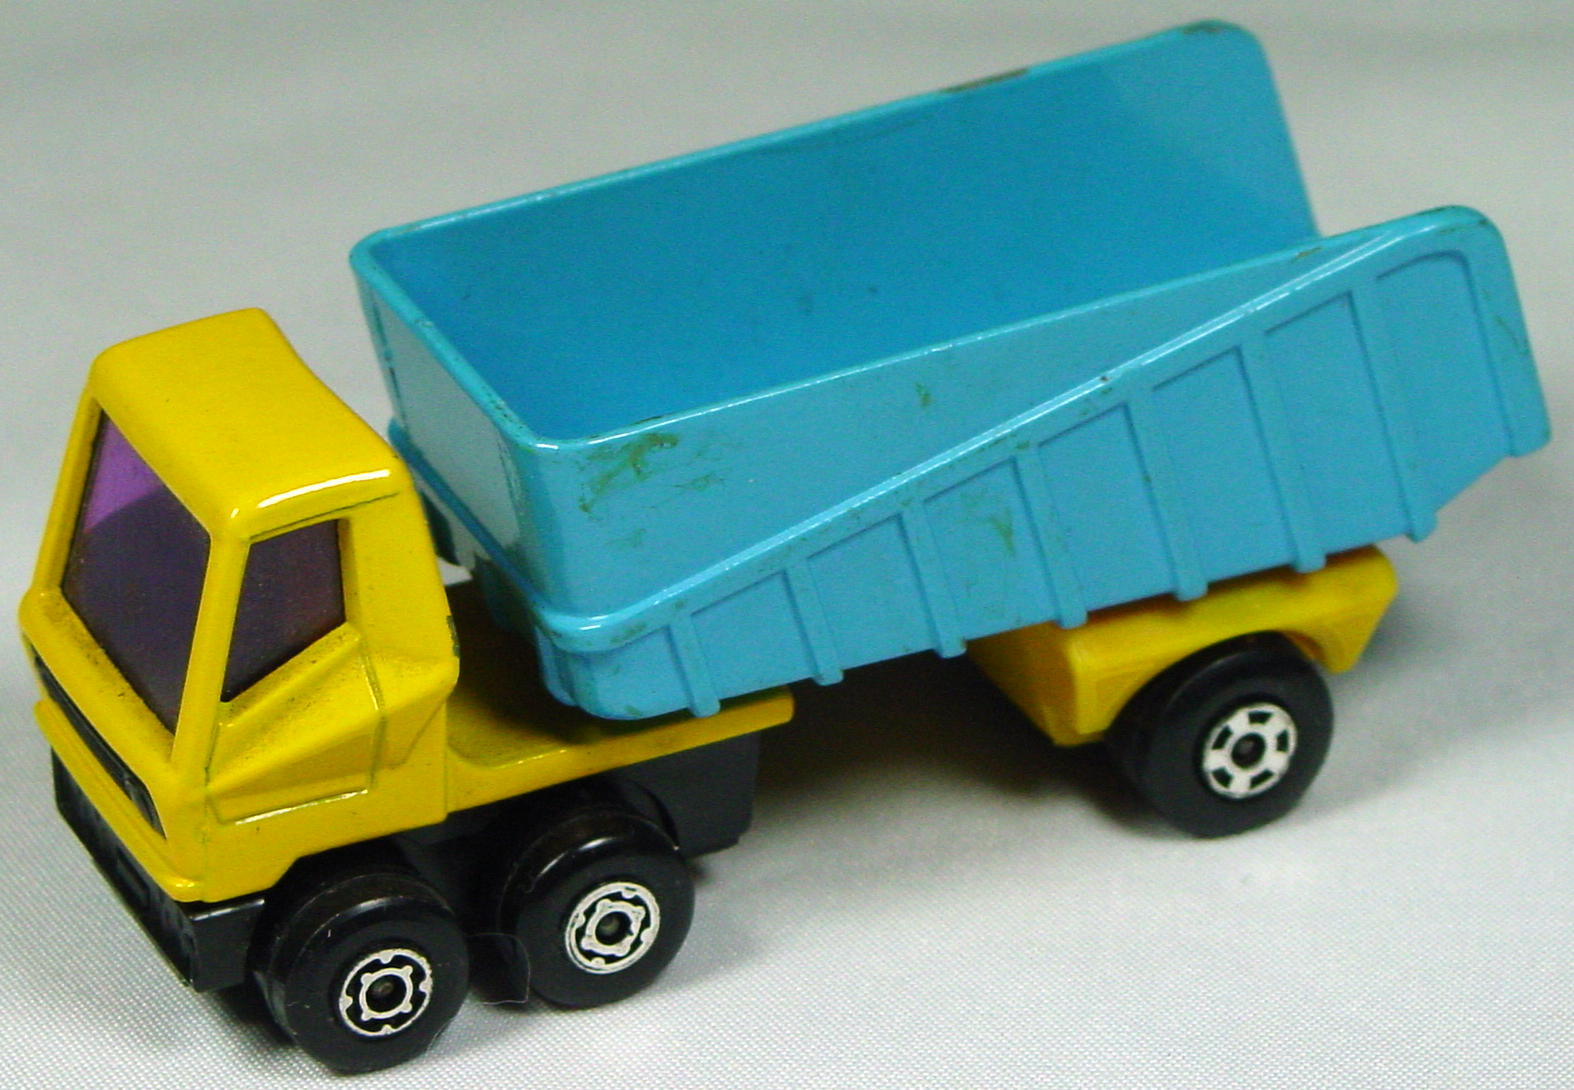 Lesney SuperFast 50 B 2 - Artic Truck Org-yellow and blue org-yellow base pur window no label